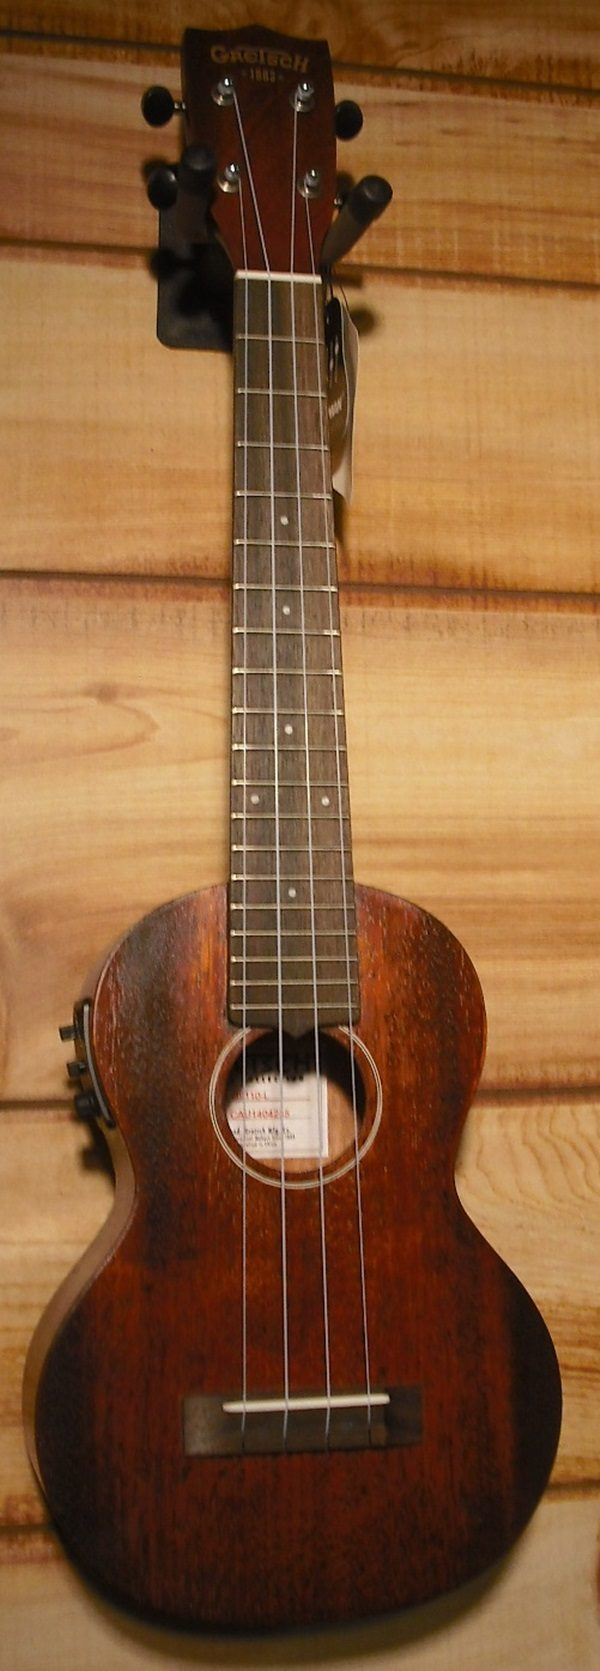 Gretsch® G9110-L Concert Long Neck Acoustic-Electric Ukulele w/Gigbag